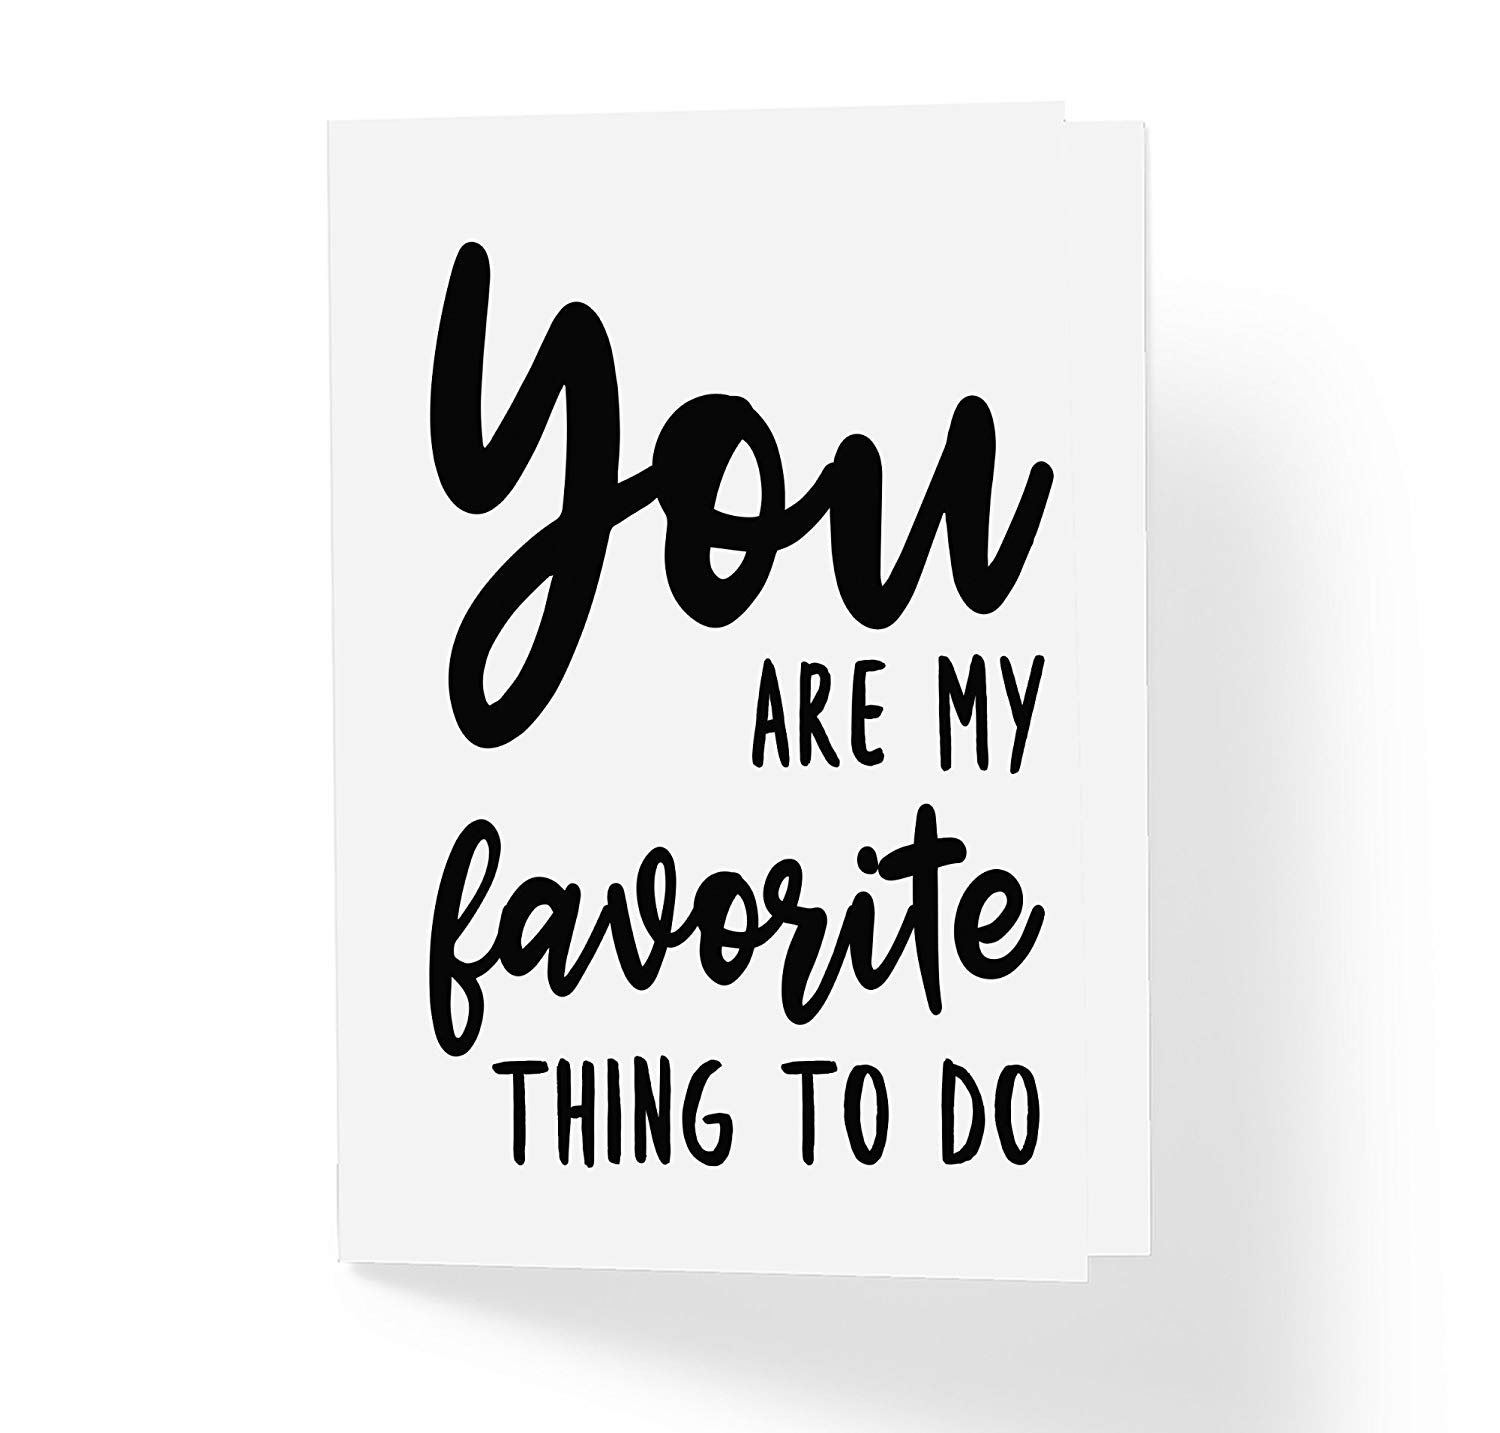 "You Are My Favorite Thing to Do - Adult Love Greeting Card - 5"" x 7"" Blank Inside with A7 Kraft Envelope Included - Funny Romantic Love Greeting Cards"